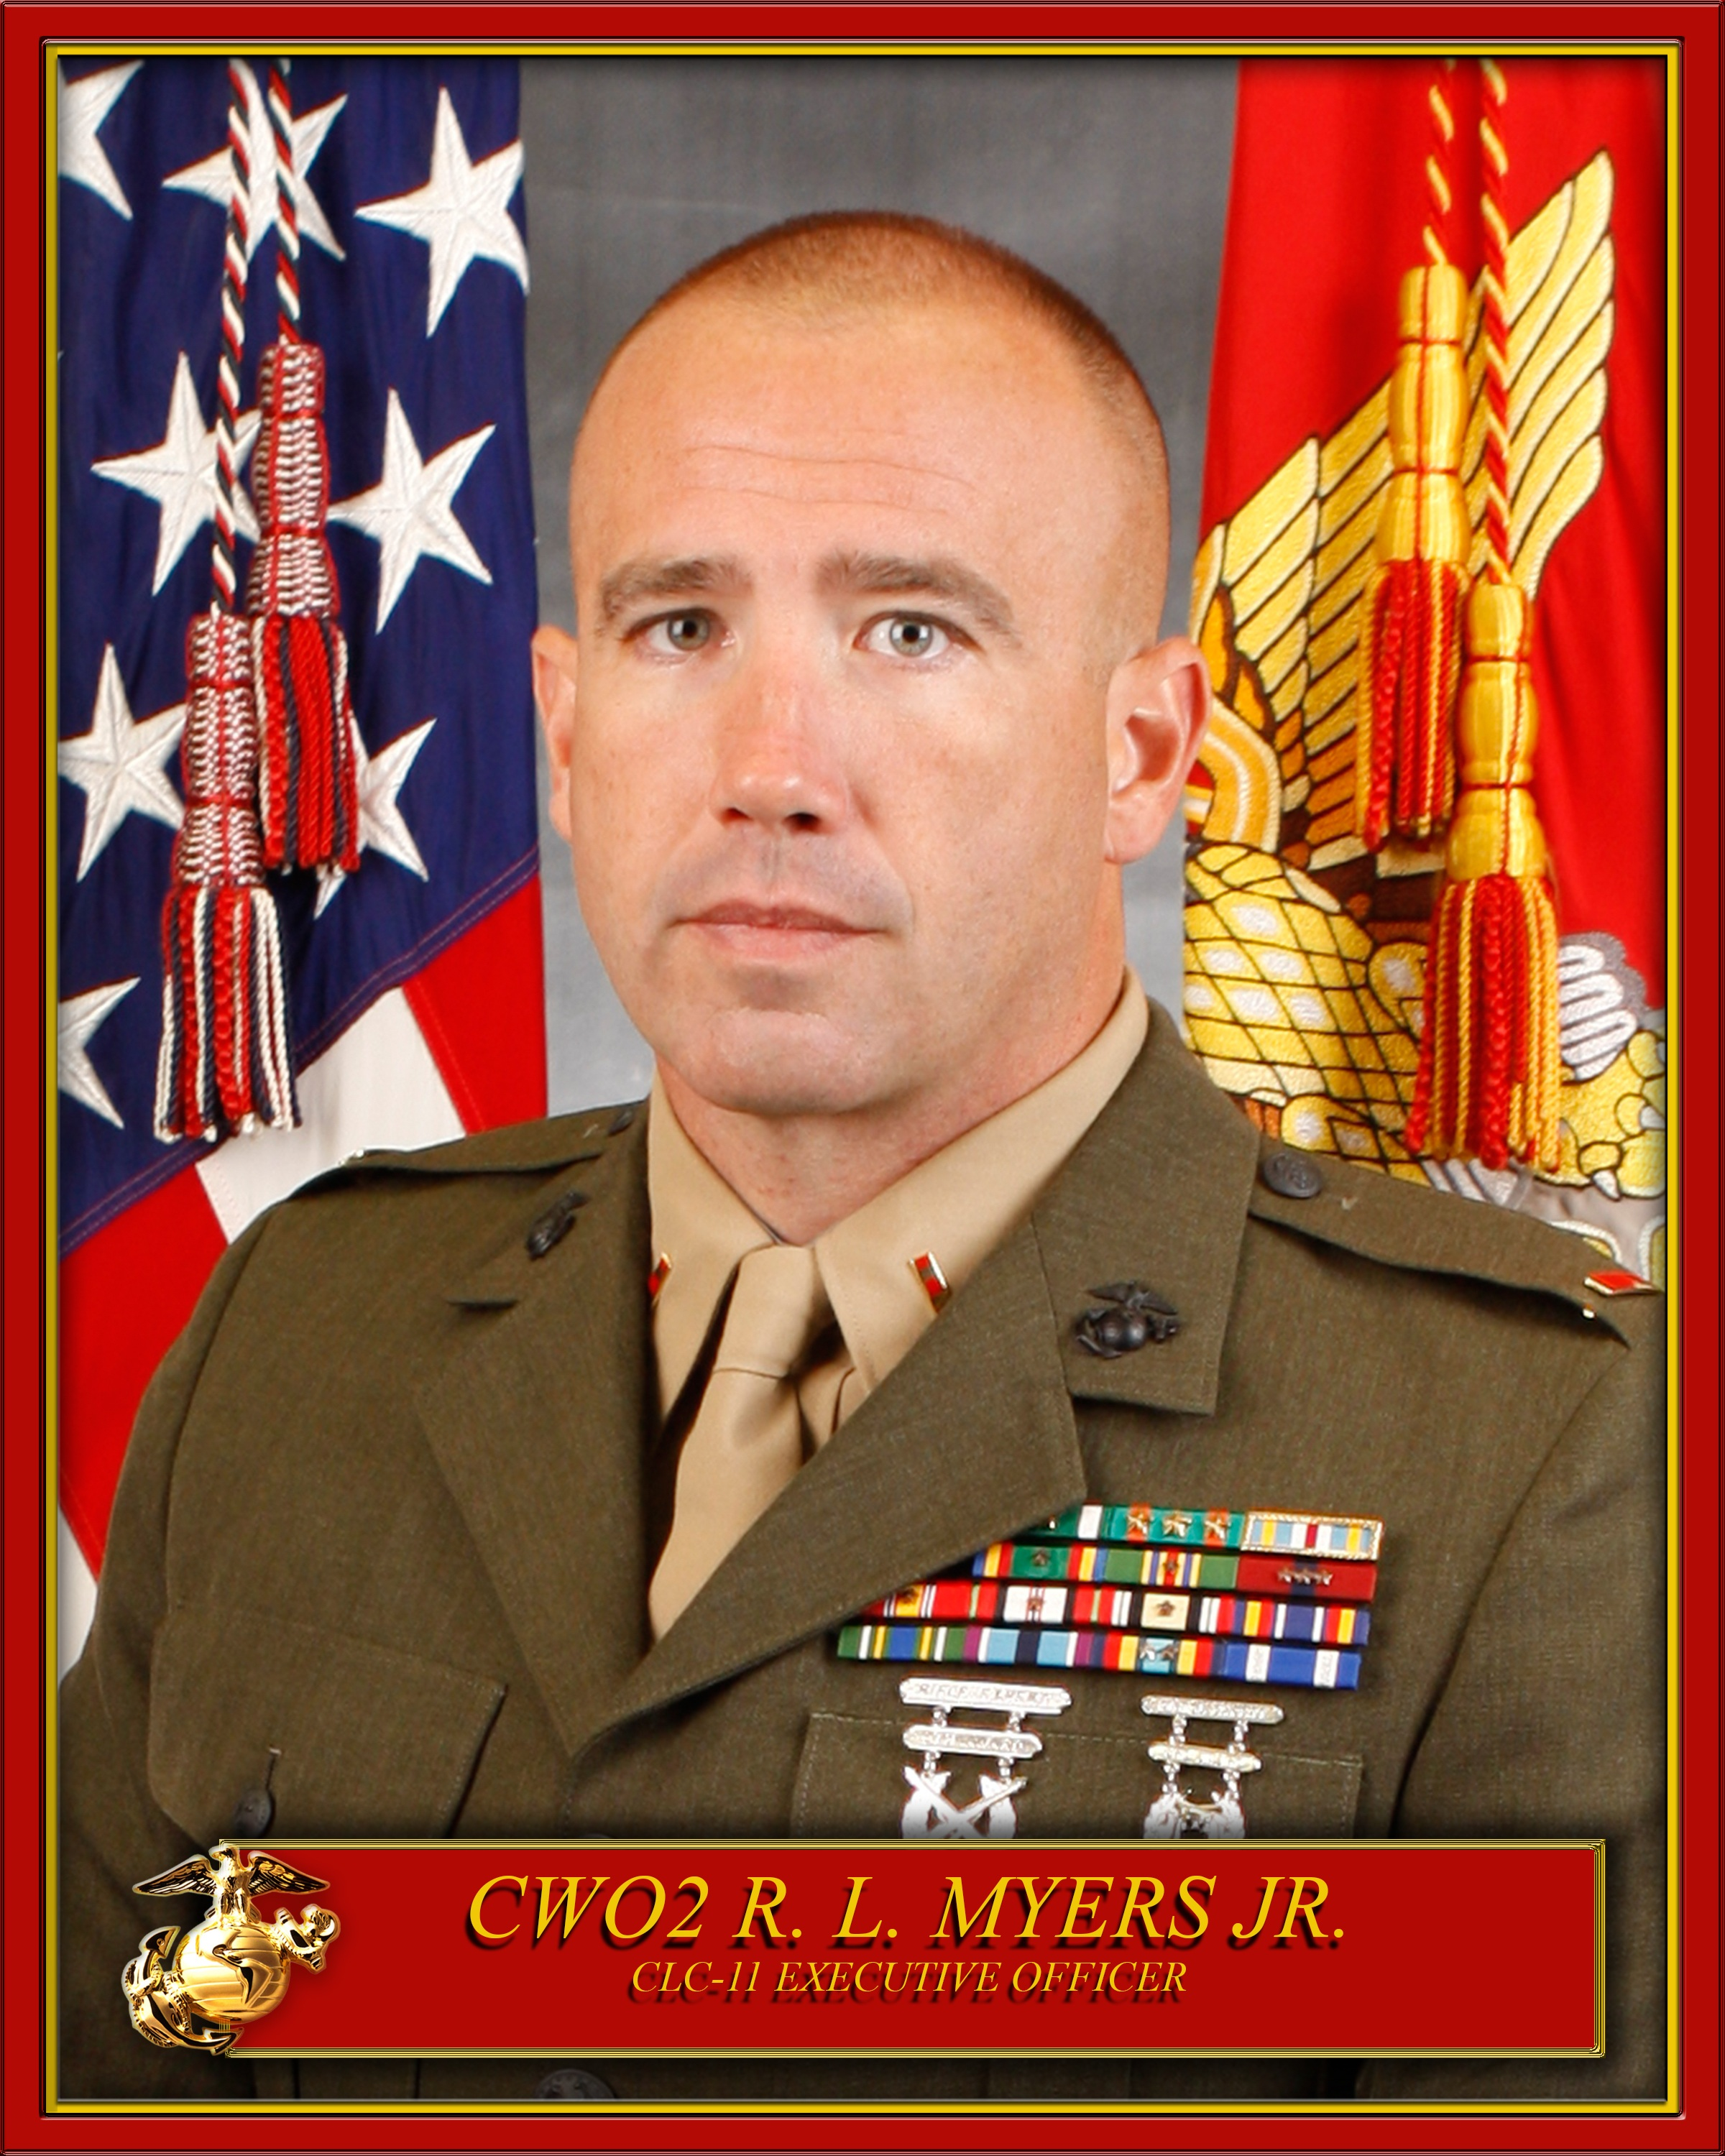 cwo r l myers jr > st marine logistics group > leaders hi res photo